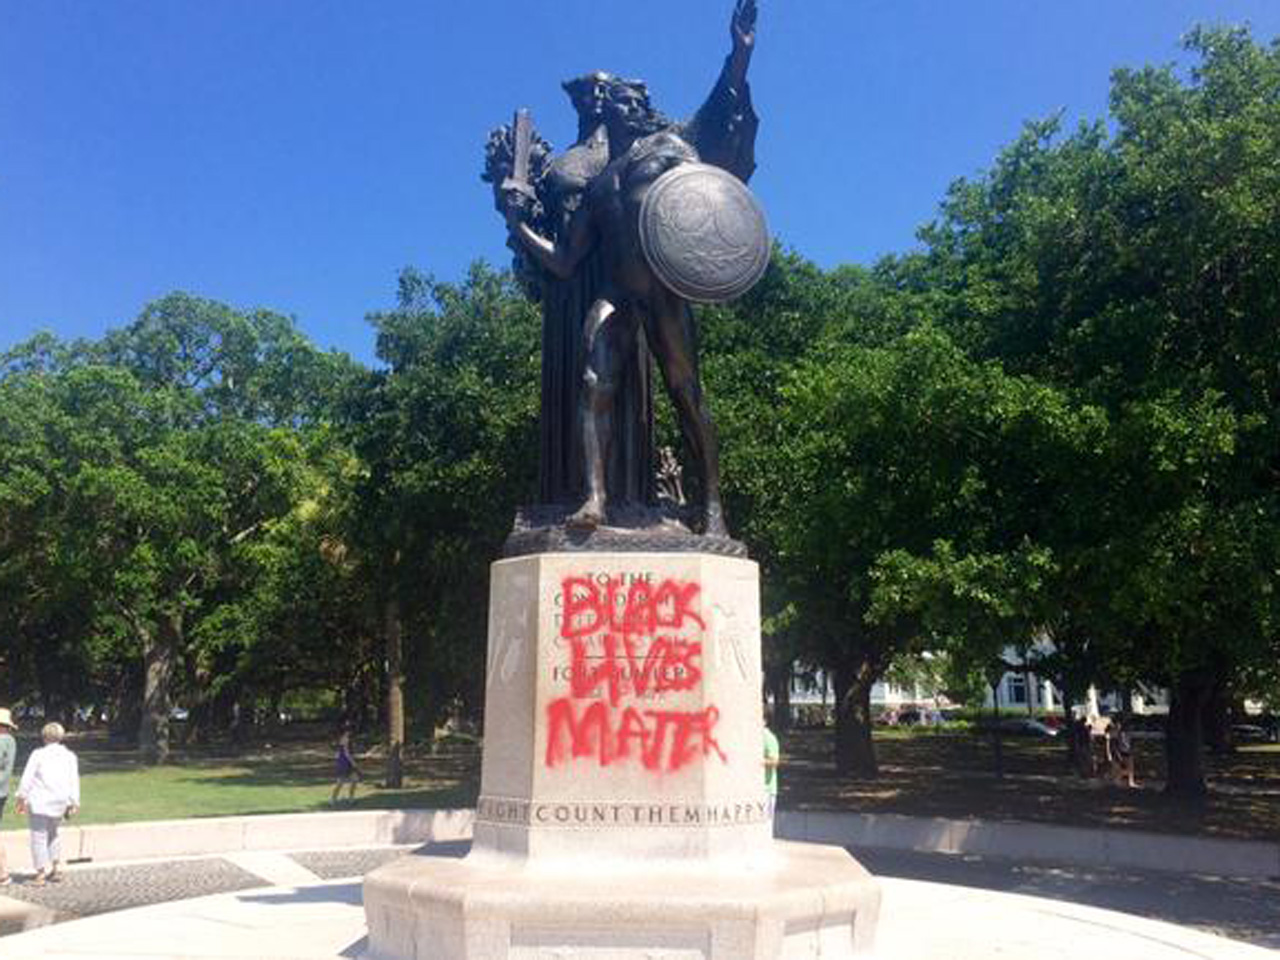 More States Seeing Confederate Statues Defaced In Wake